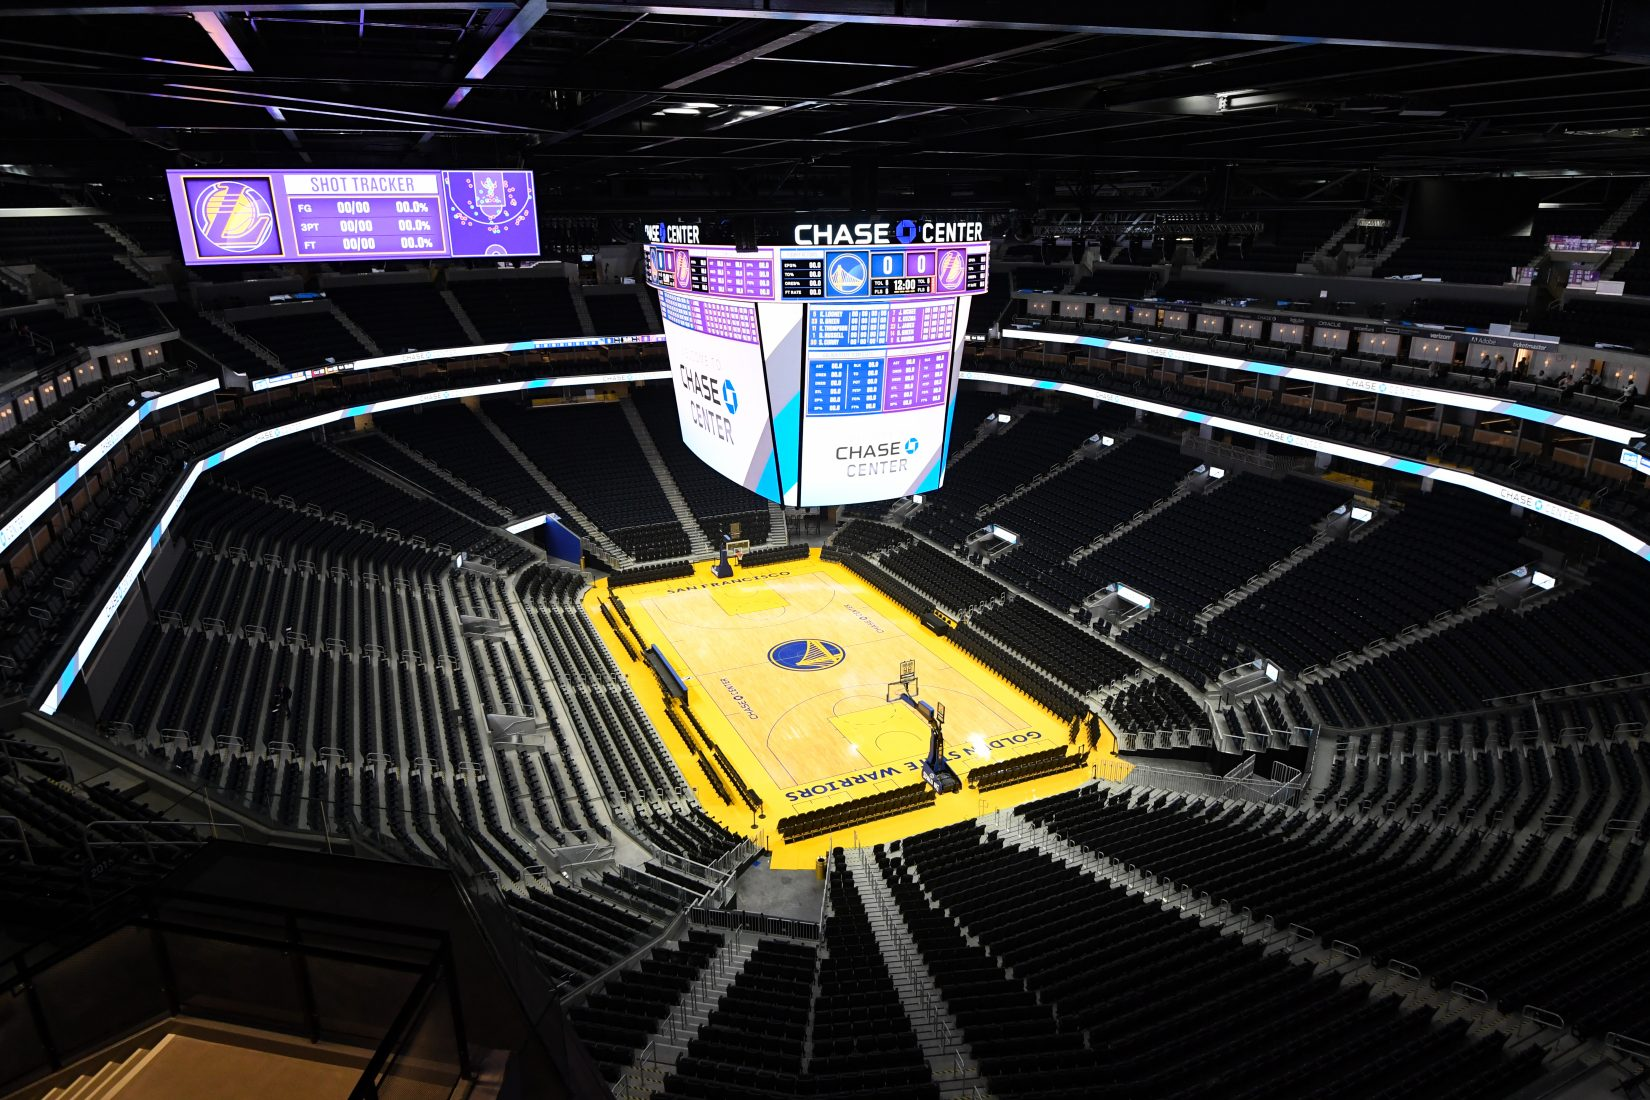 Chase Center's center-hung scoreboard